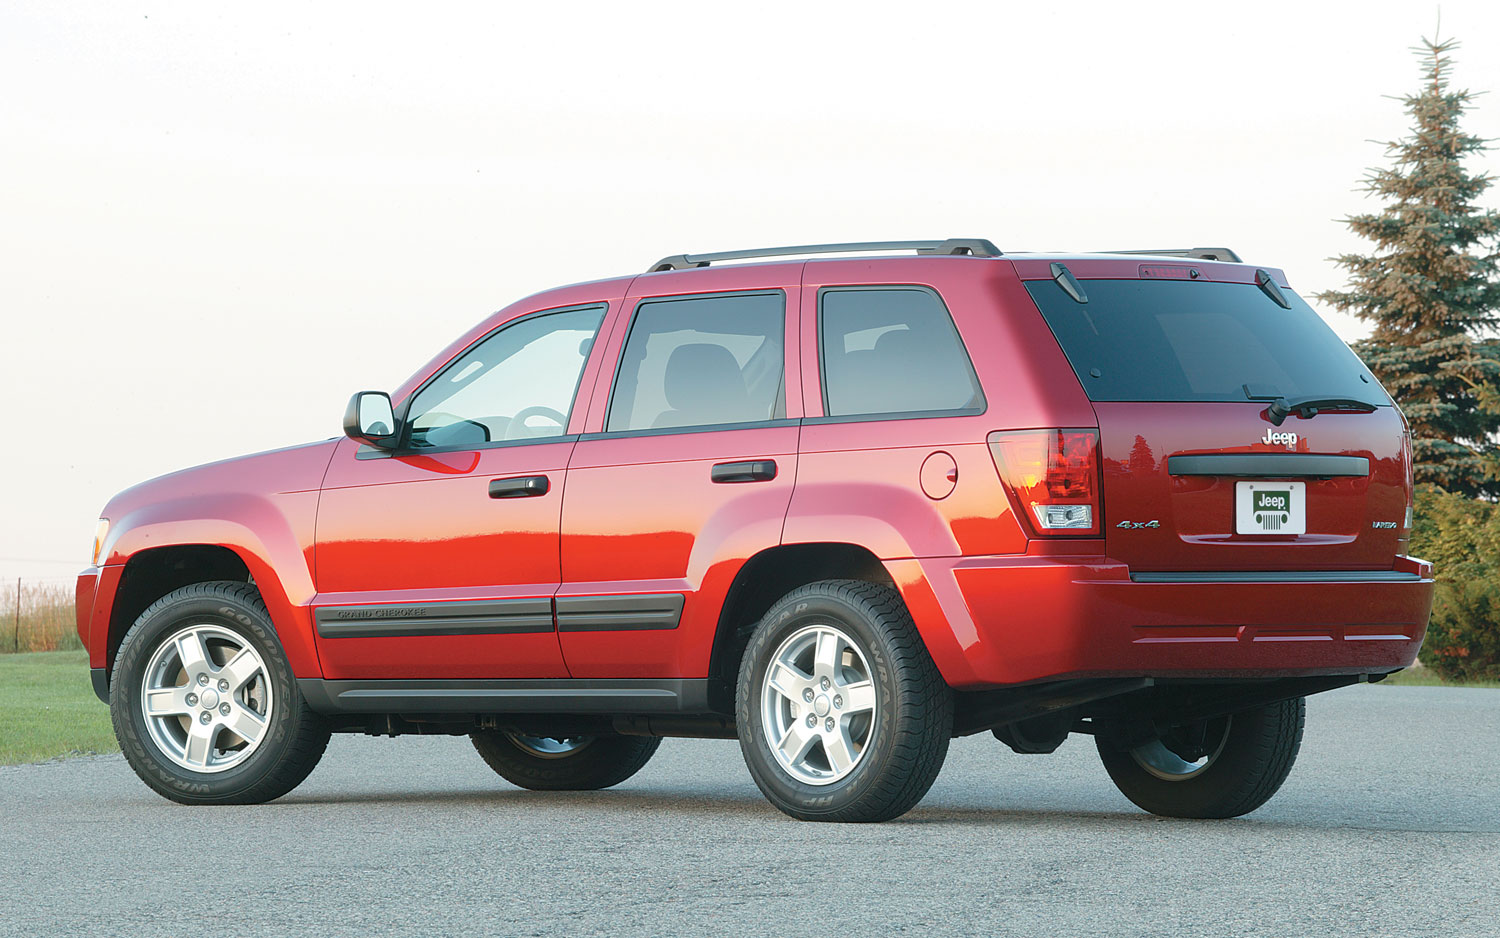 recall central: 2005-2010 jeep grand cherokee, commander suvs for